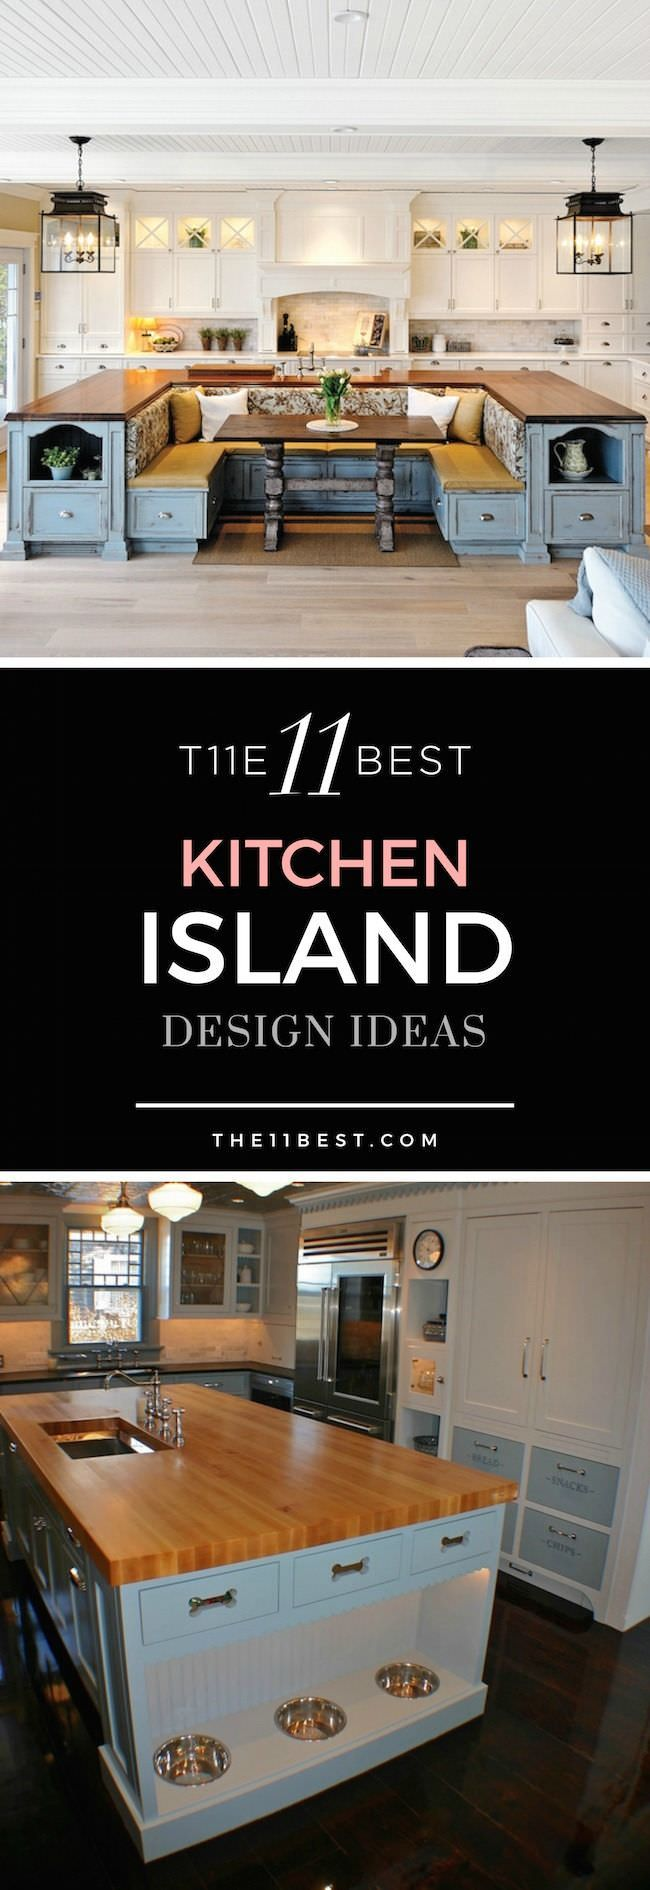 35 best Kitchen images on Pinterest | Dream kitchens, Kitchens and ...